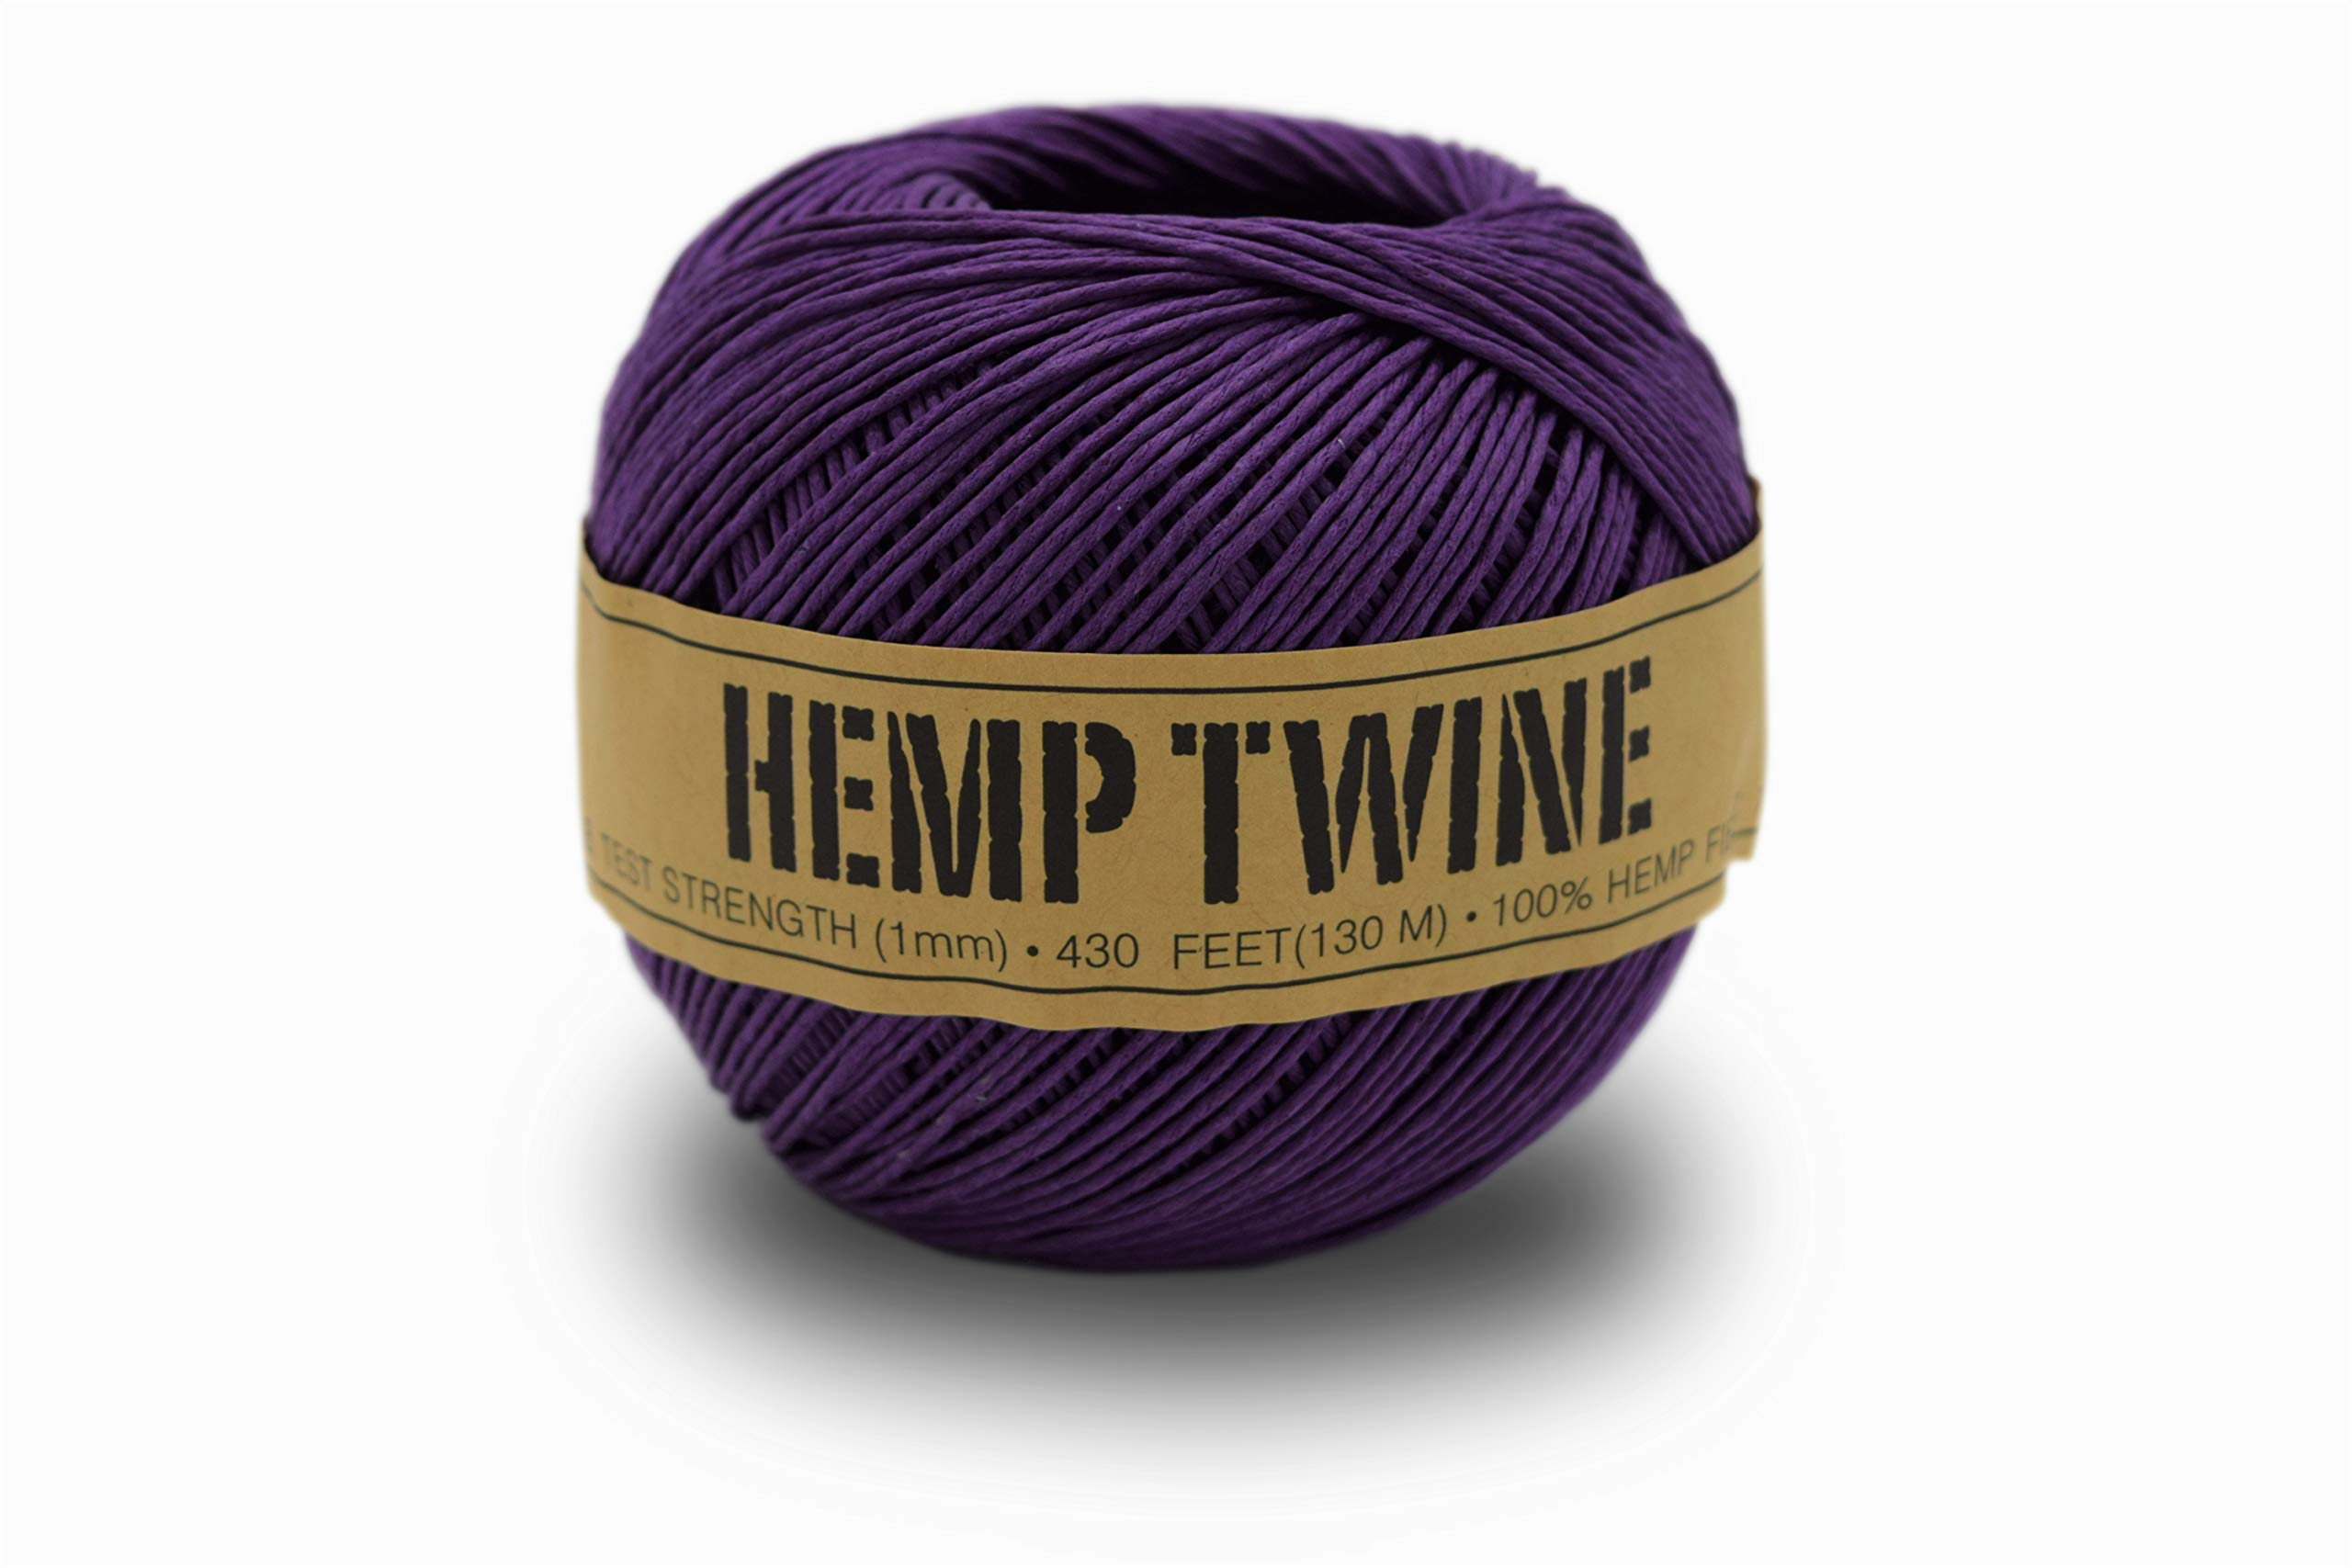 100% Hemp Twine Ball 1MM, 100G/430 Ft. - 20 lb. Test Strength - Purple by Bean Products